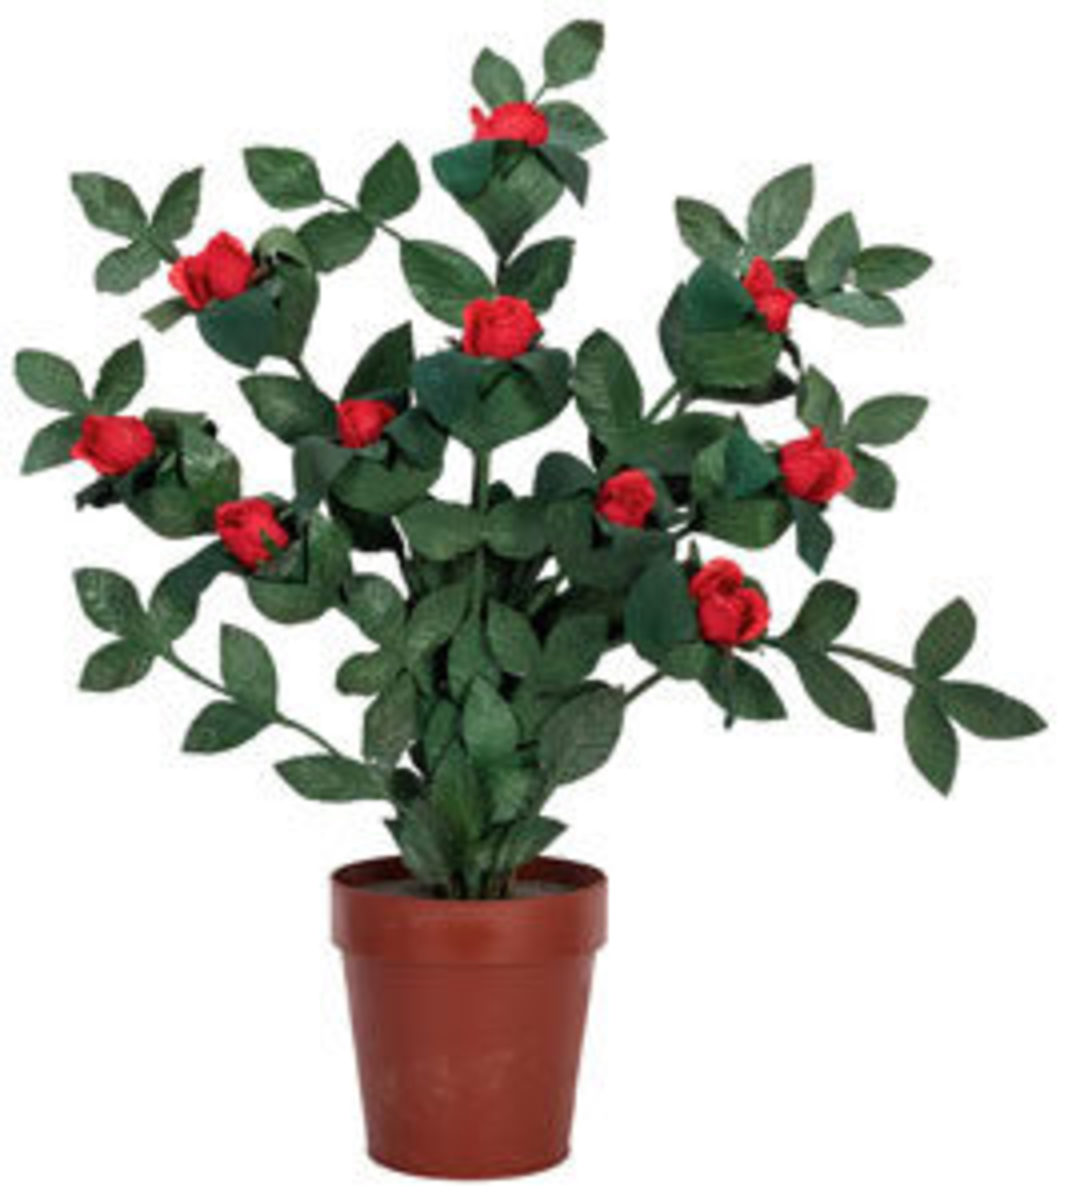 Edgar Bergen's c. 1939 Flowering Rose Bush, made by Petrie and Lewis of New Haven, CT, was estimated at $5,000-7,000 and blossomed to $8,400.